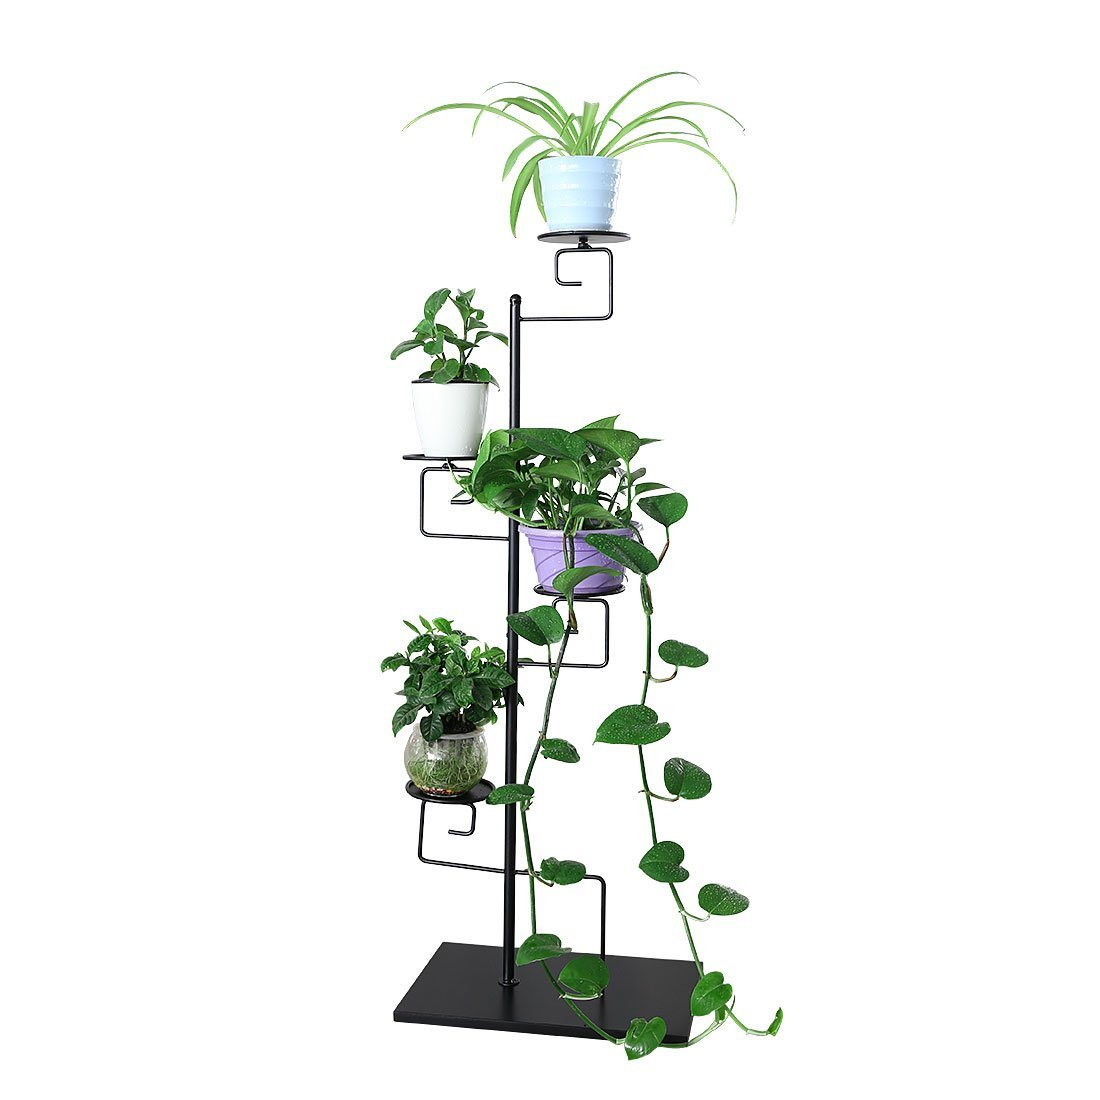 4-Tiered Folding Plant Stand Pots Display Shelf by HLC